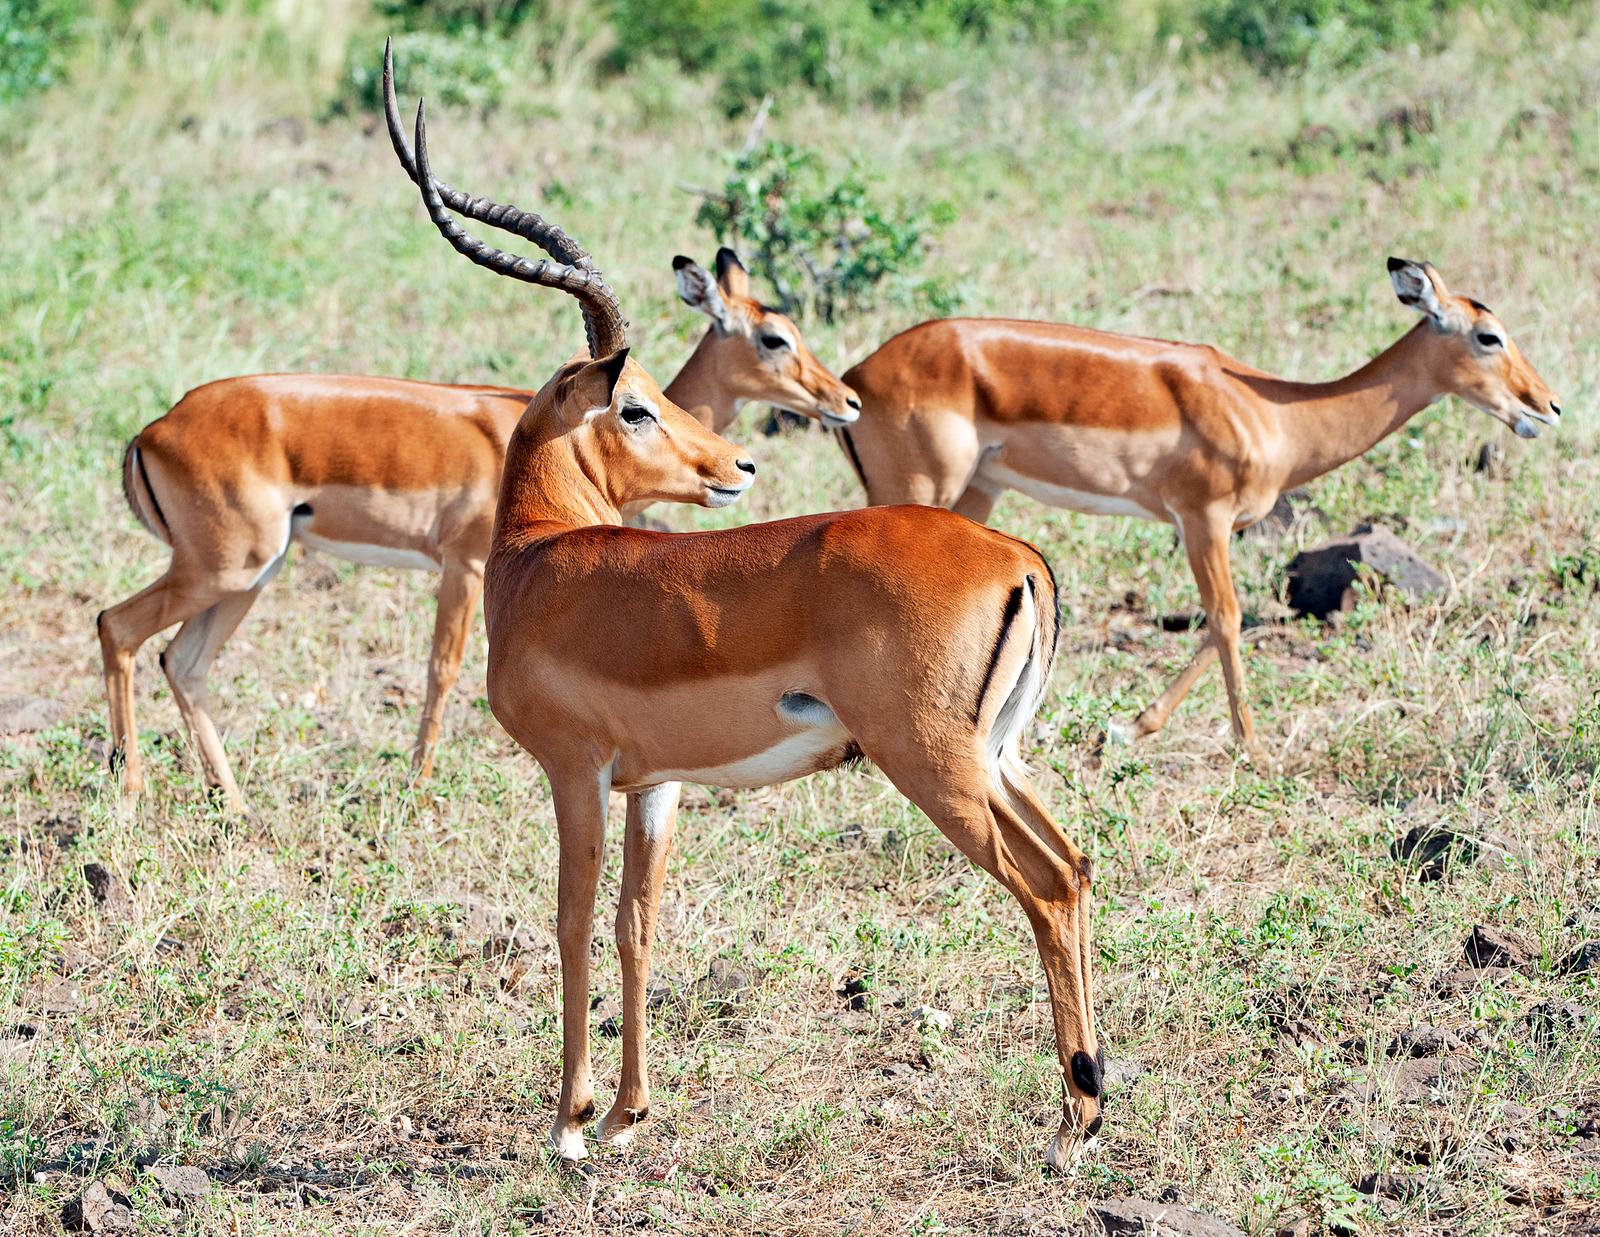 Impala antelope group of male and female animals grazing